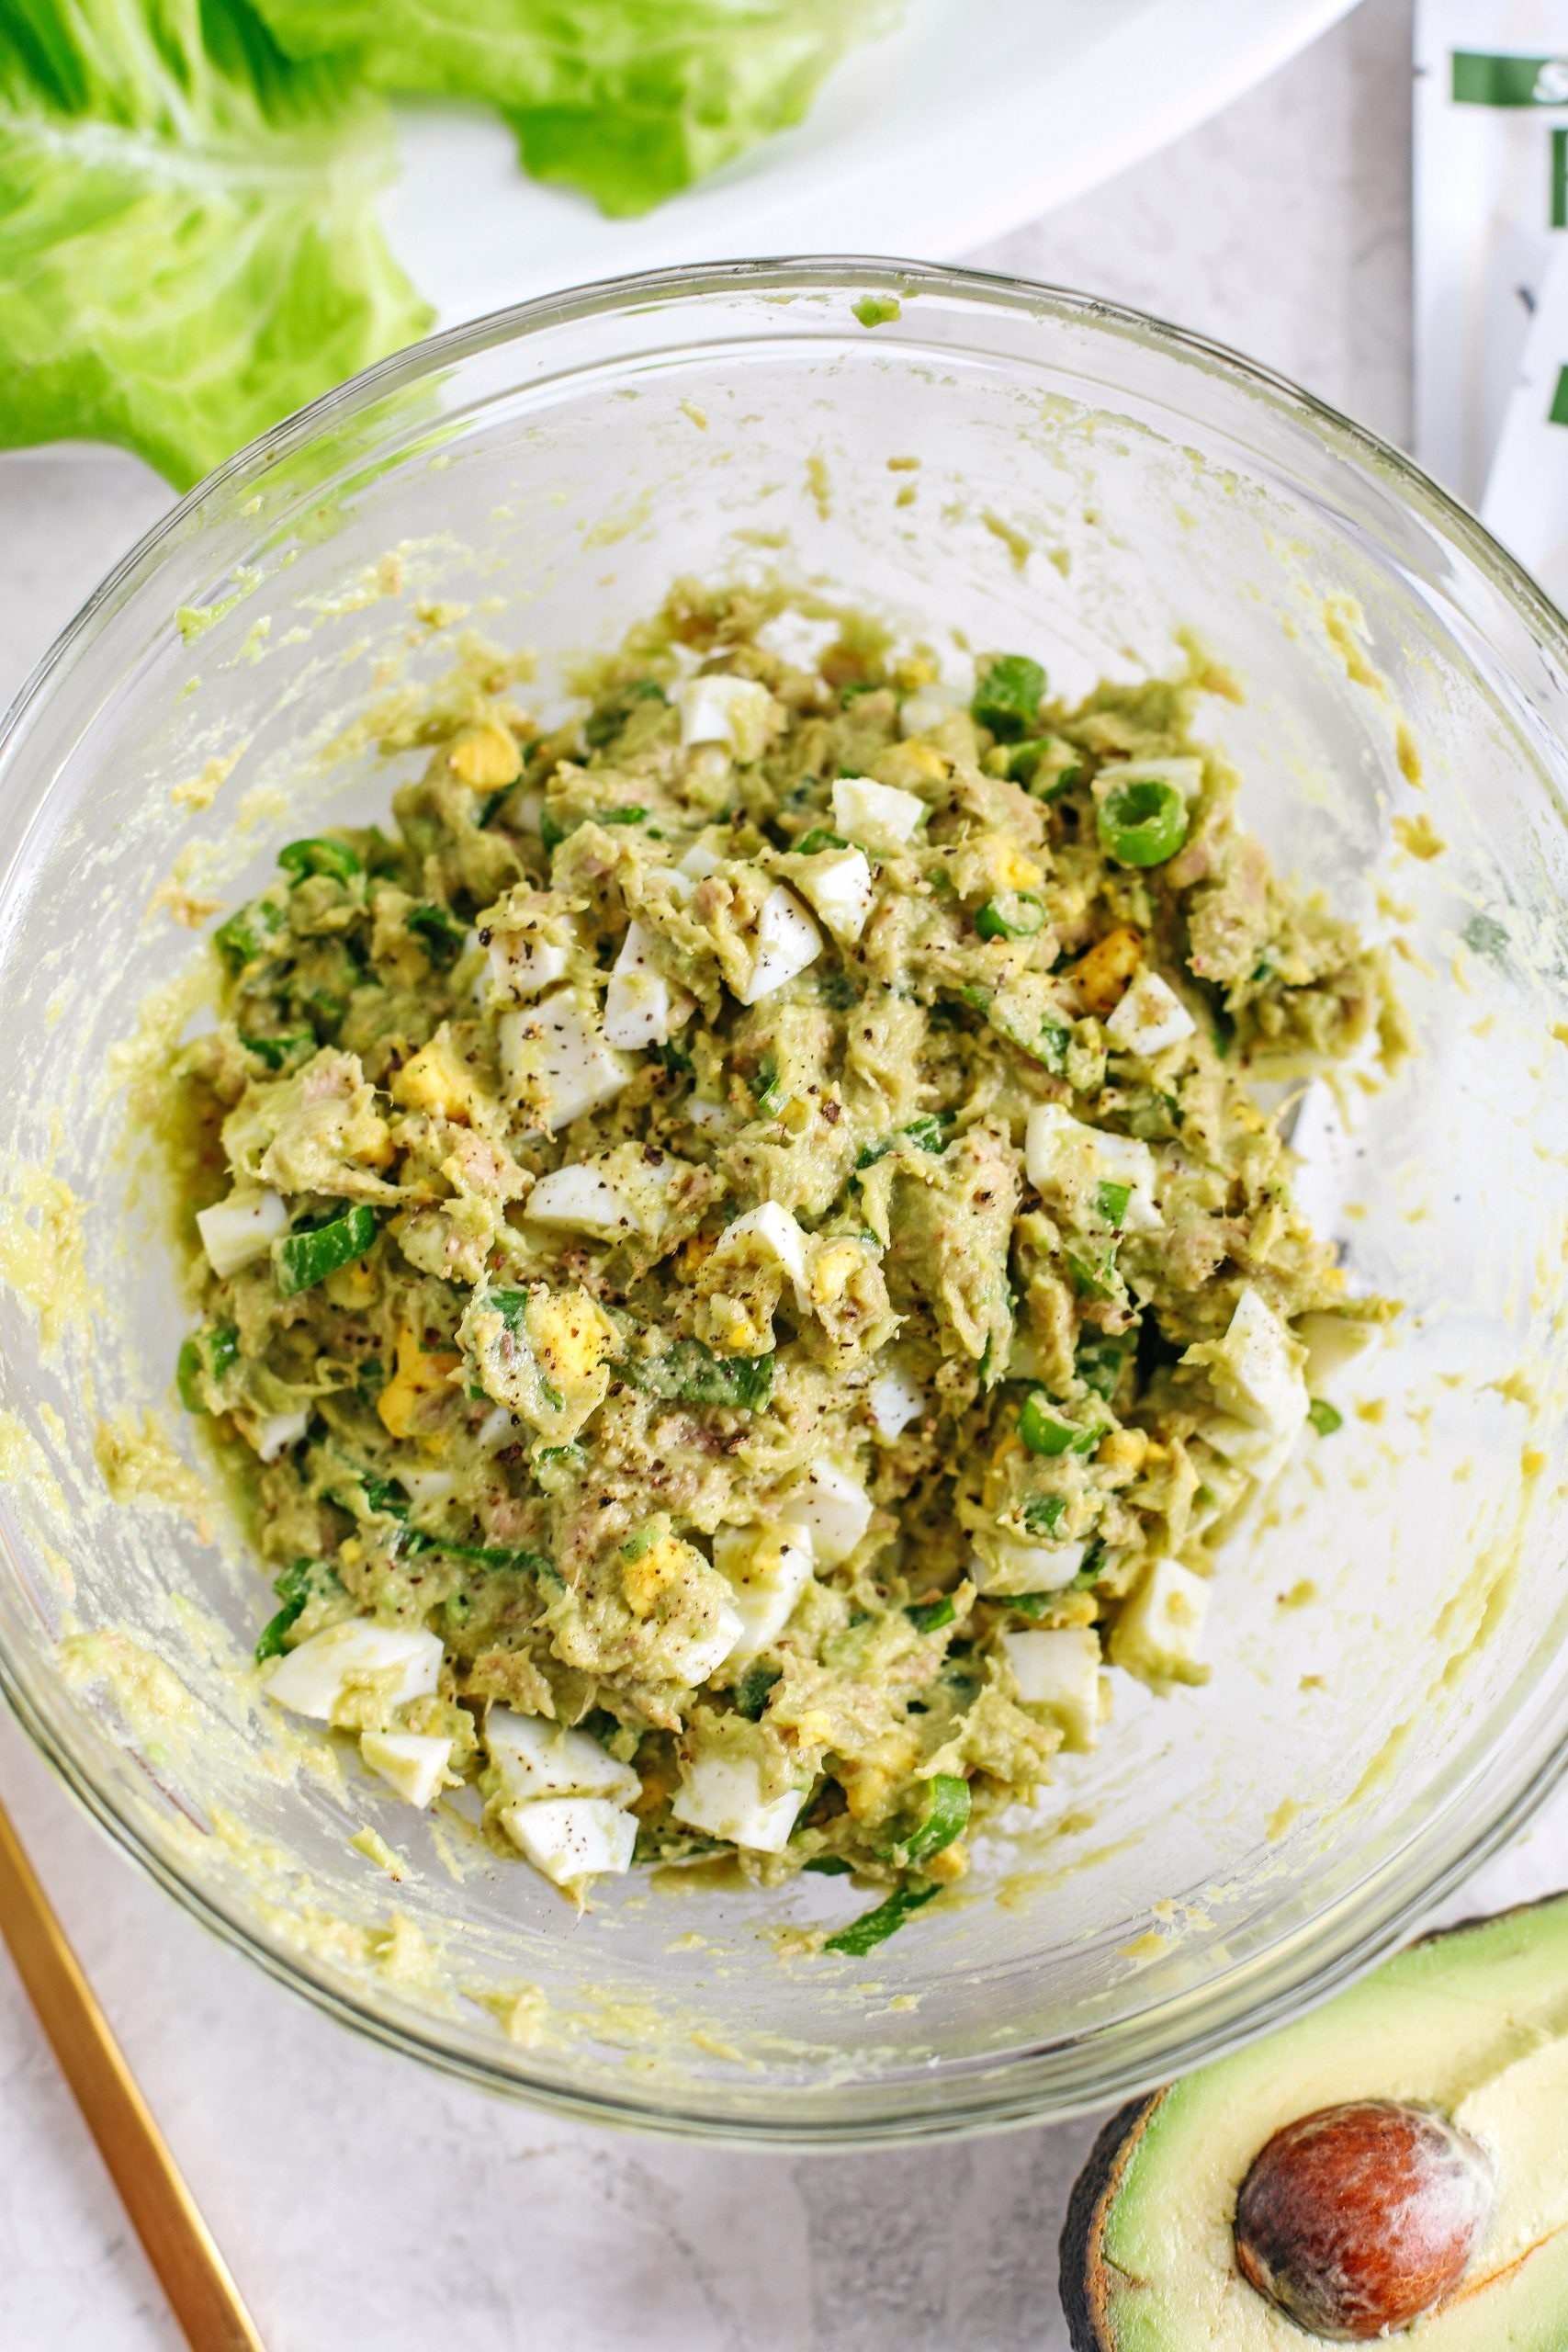 This 5-ingredient Tuna Avocado Egg Salad is fresh, delicious and only takes about 5 minutes to throw together for a healthy, protein-packed meal!  No mayo necessary!